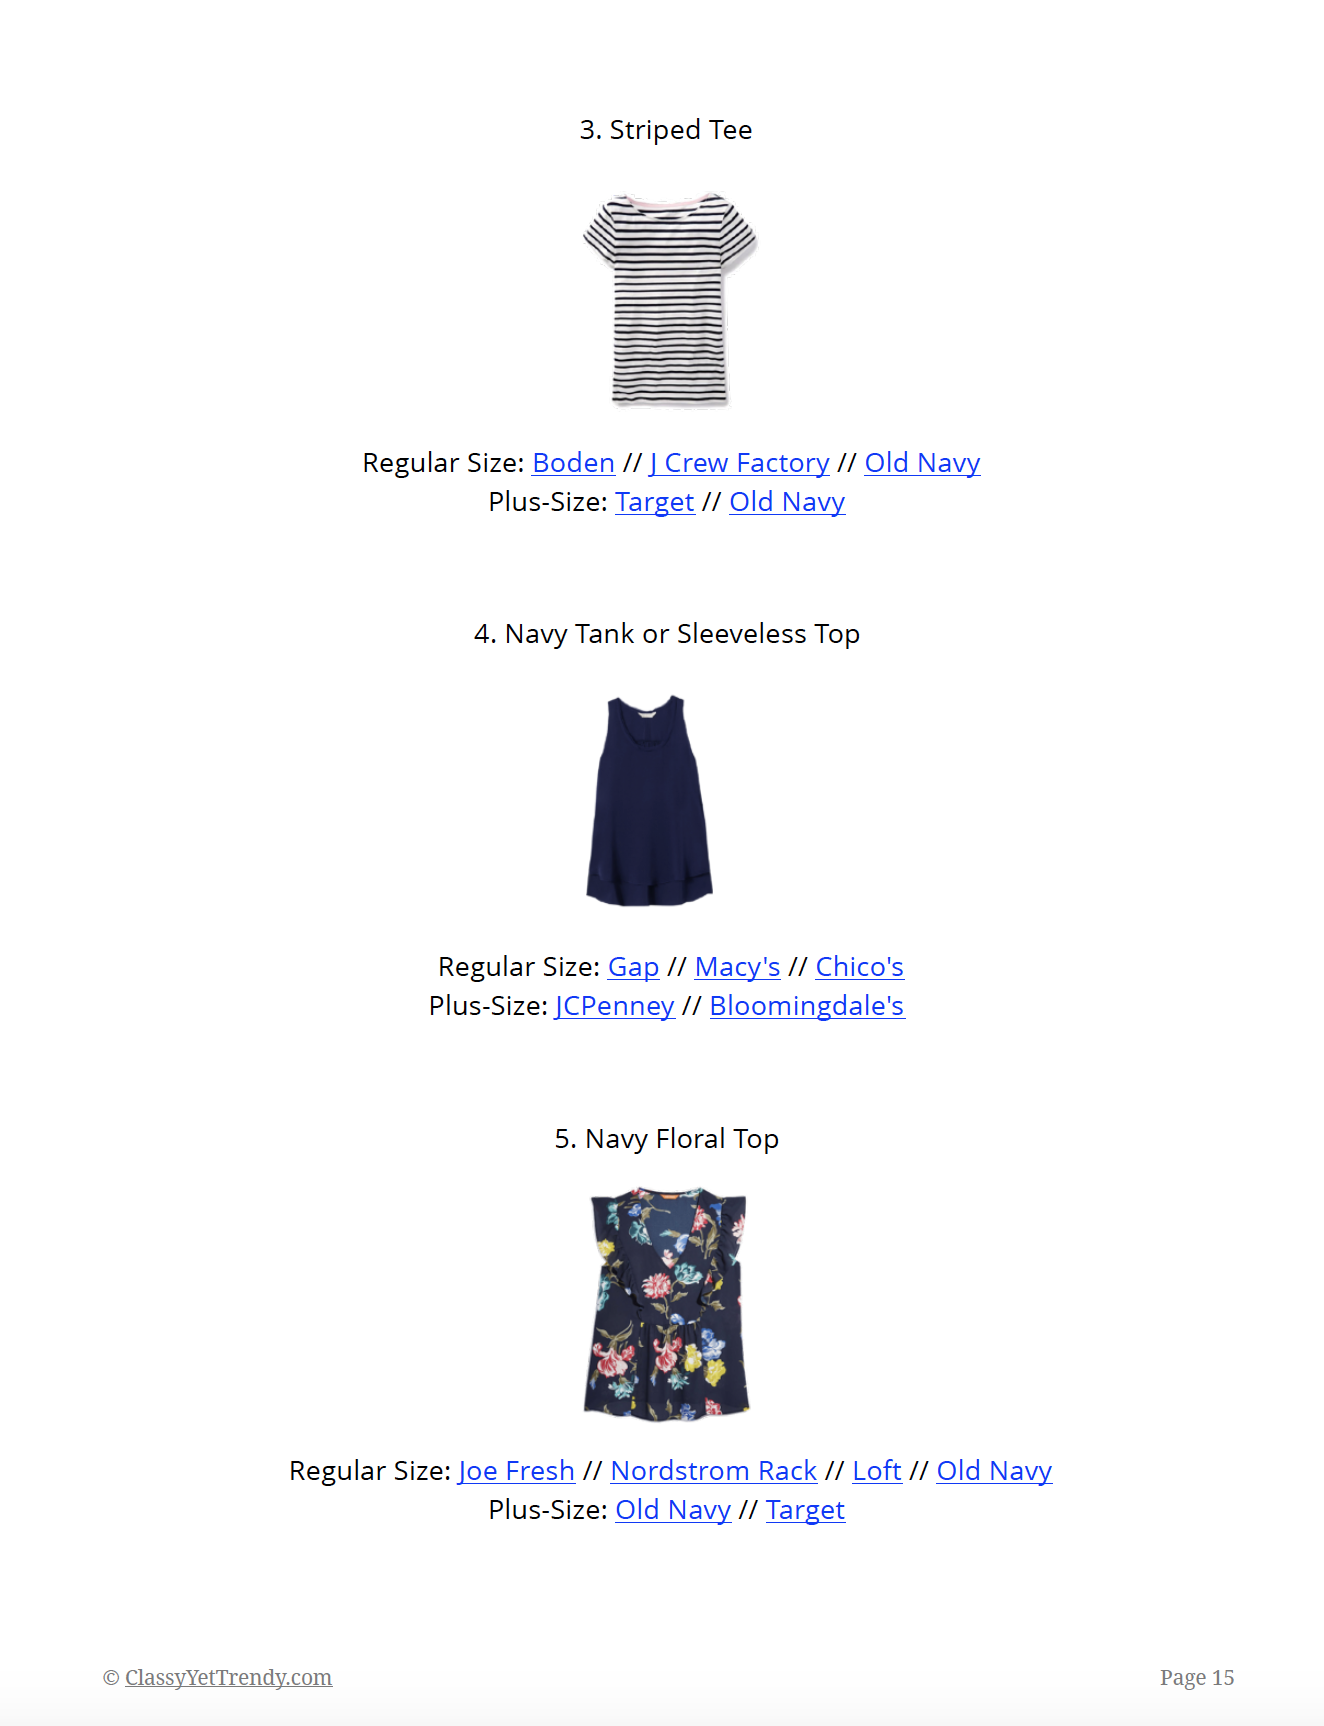 The Essential Capsule Wardrobe - Summer 2018 - page 15